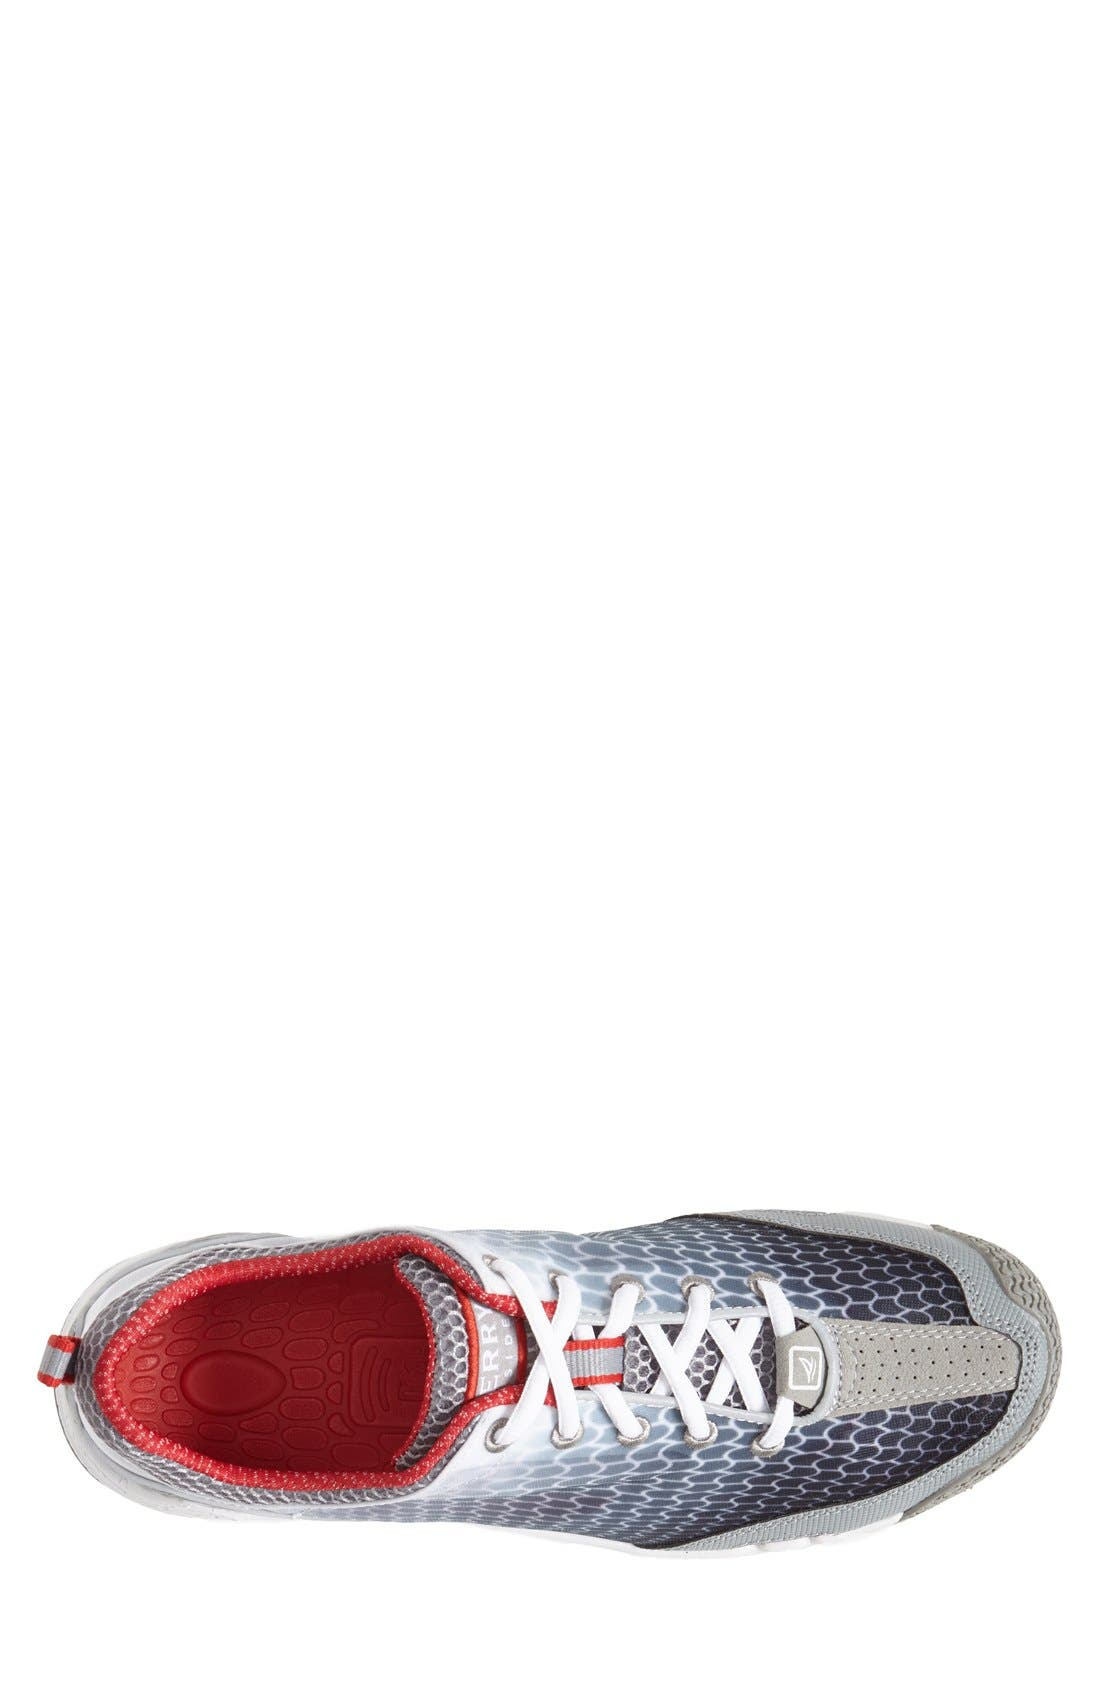 Alternate Image 3  - Sperry 'Sea Racer' Training Shoe (Men)